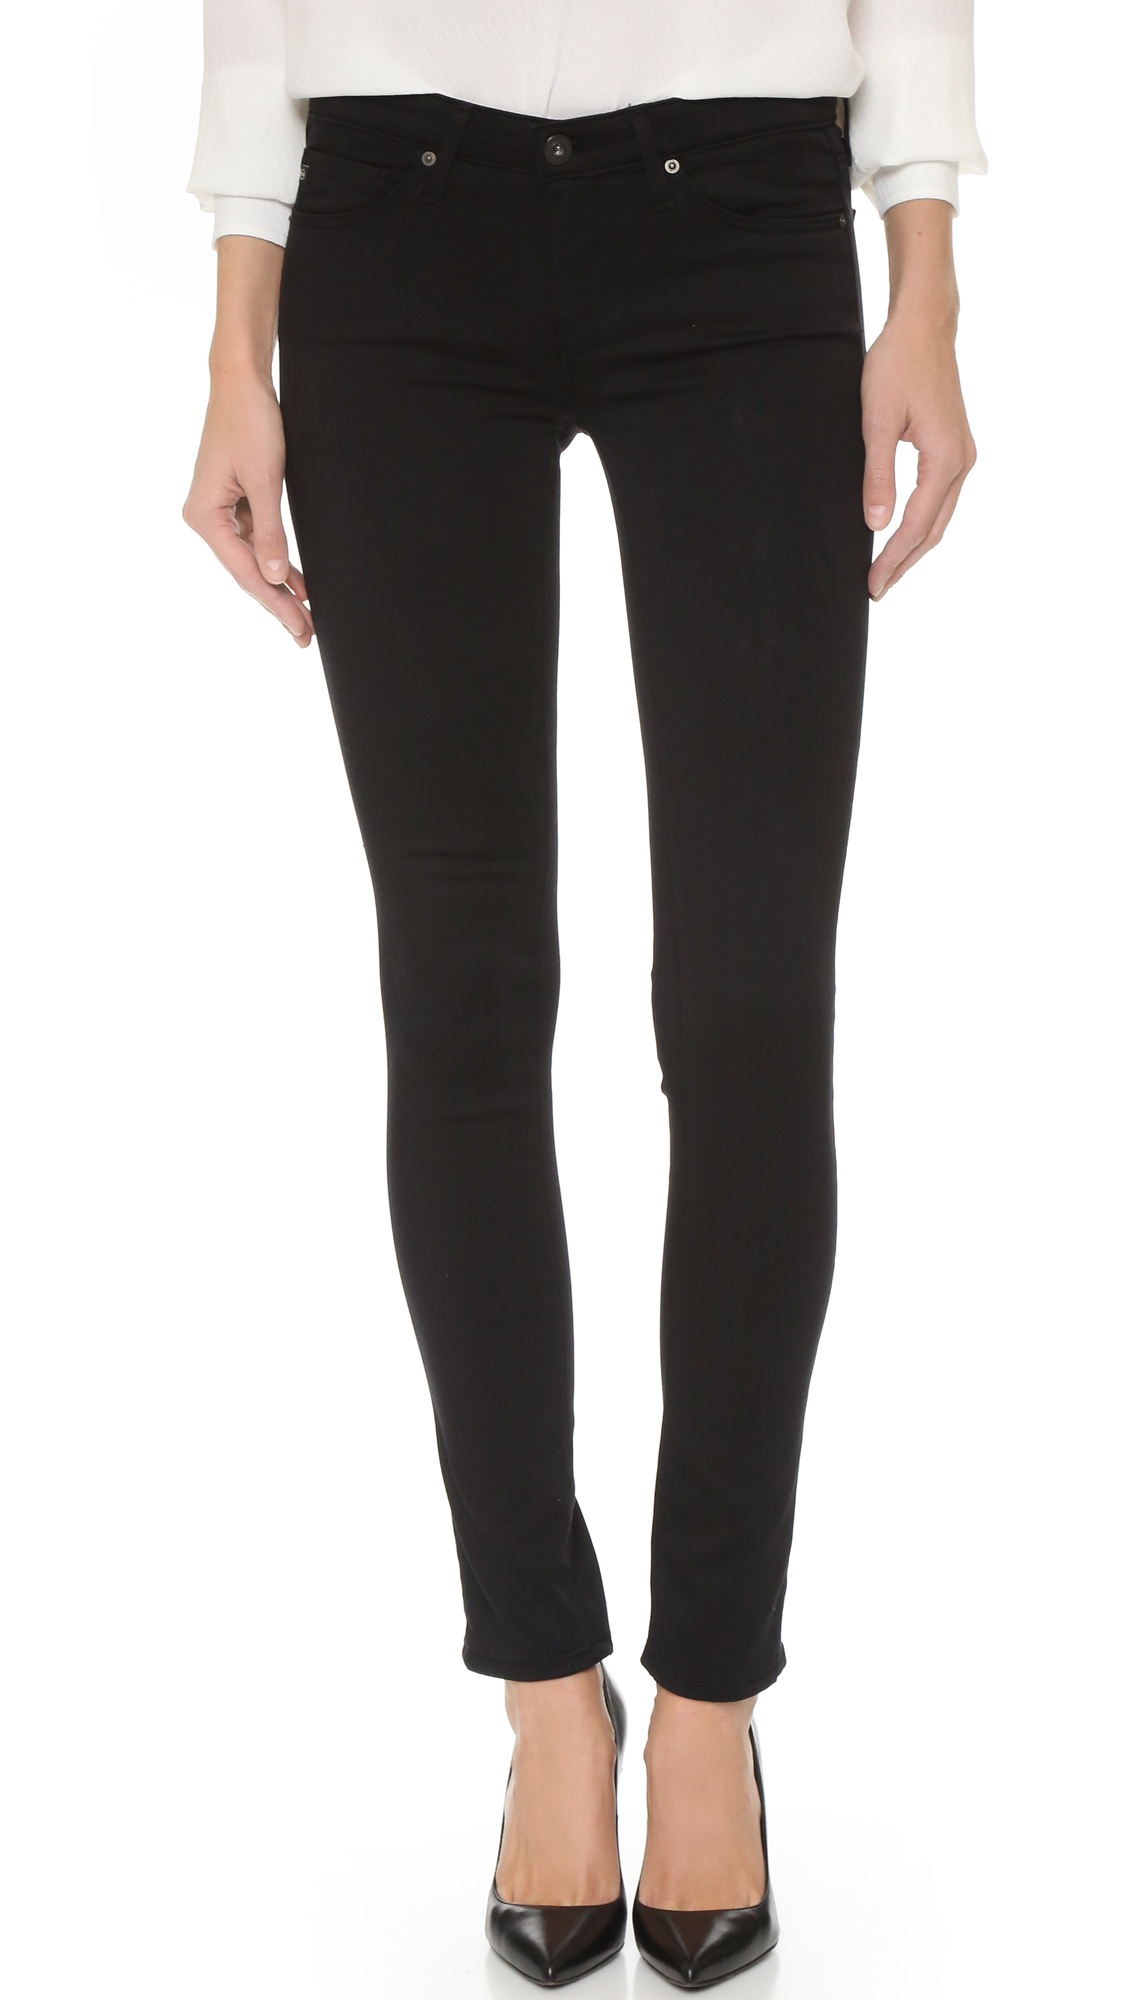 AG The Stilt Cigarette Jeans - Black